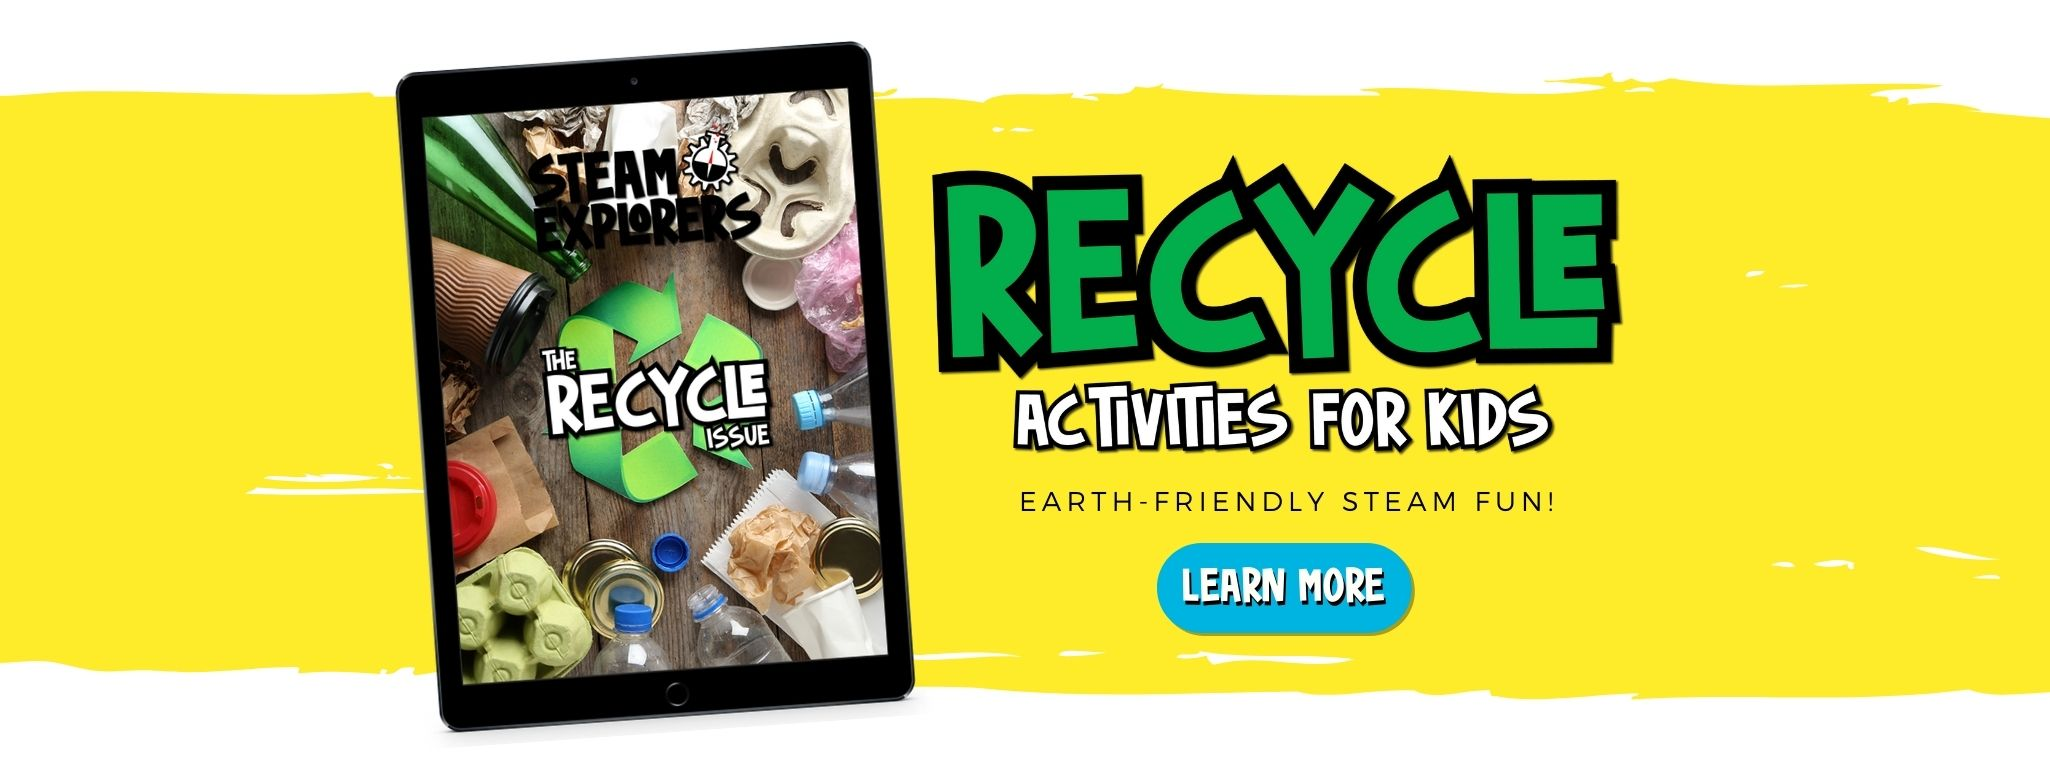 Recycle Activities for Kids STEAM Explorers ipad on yellow background